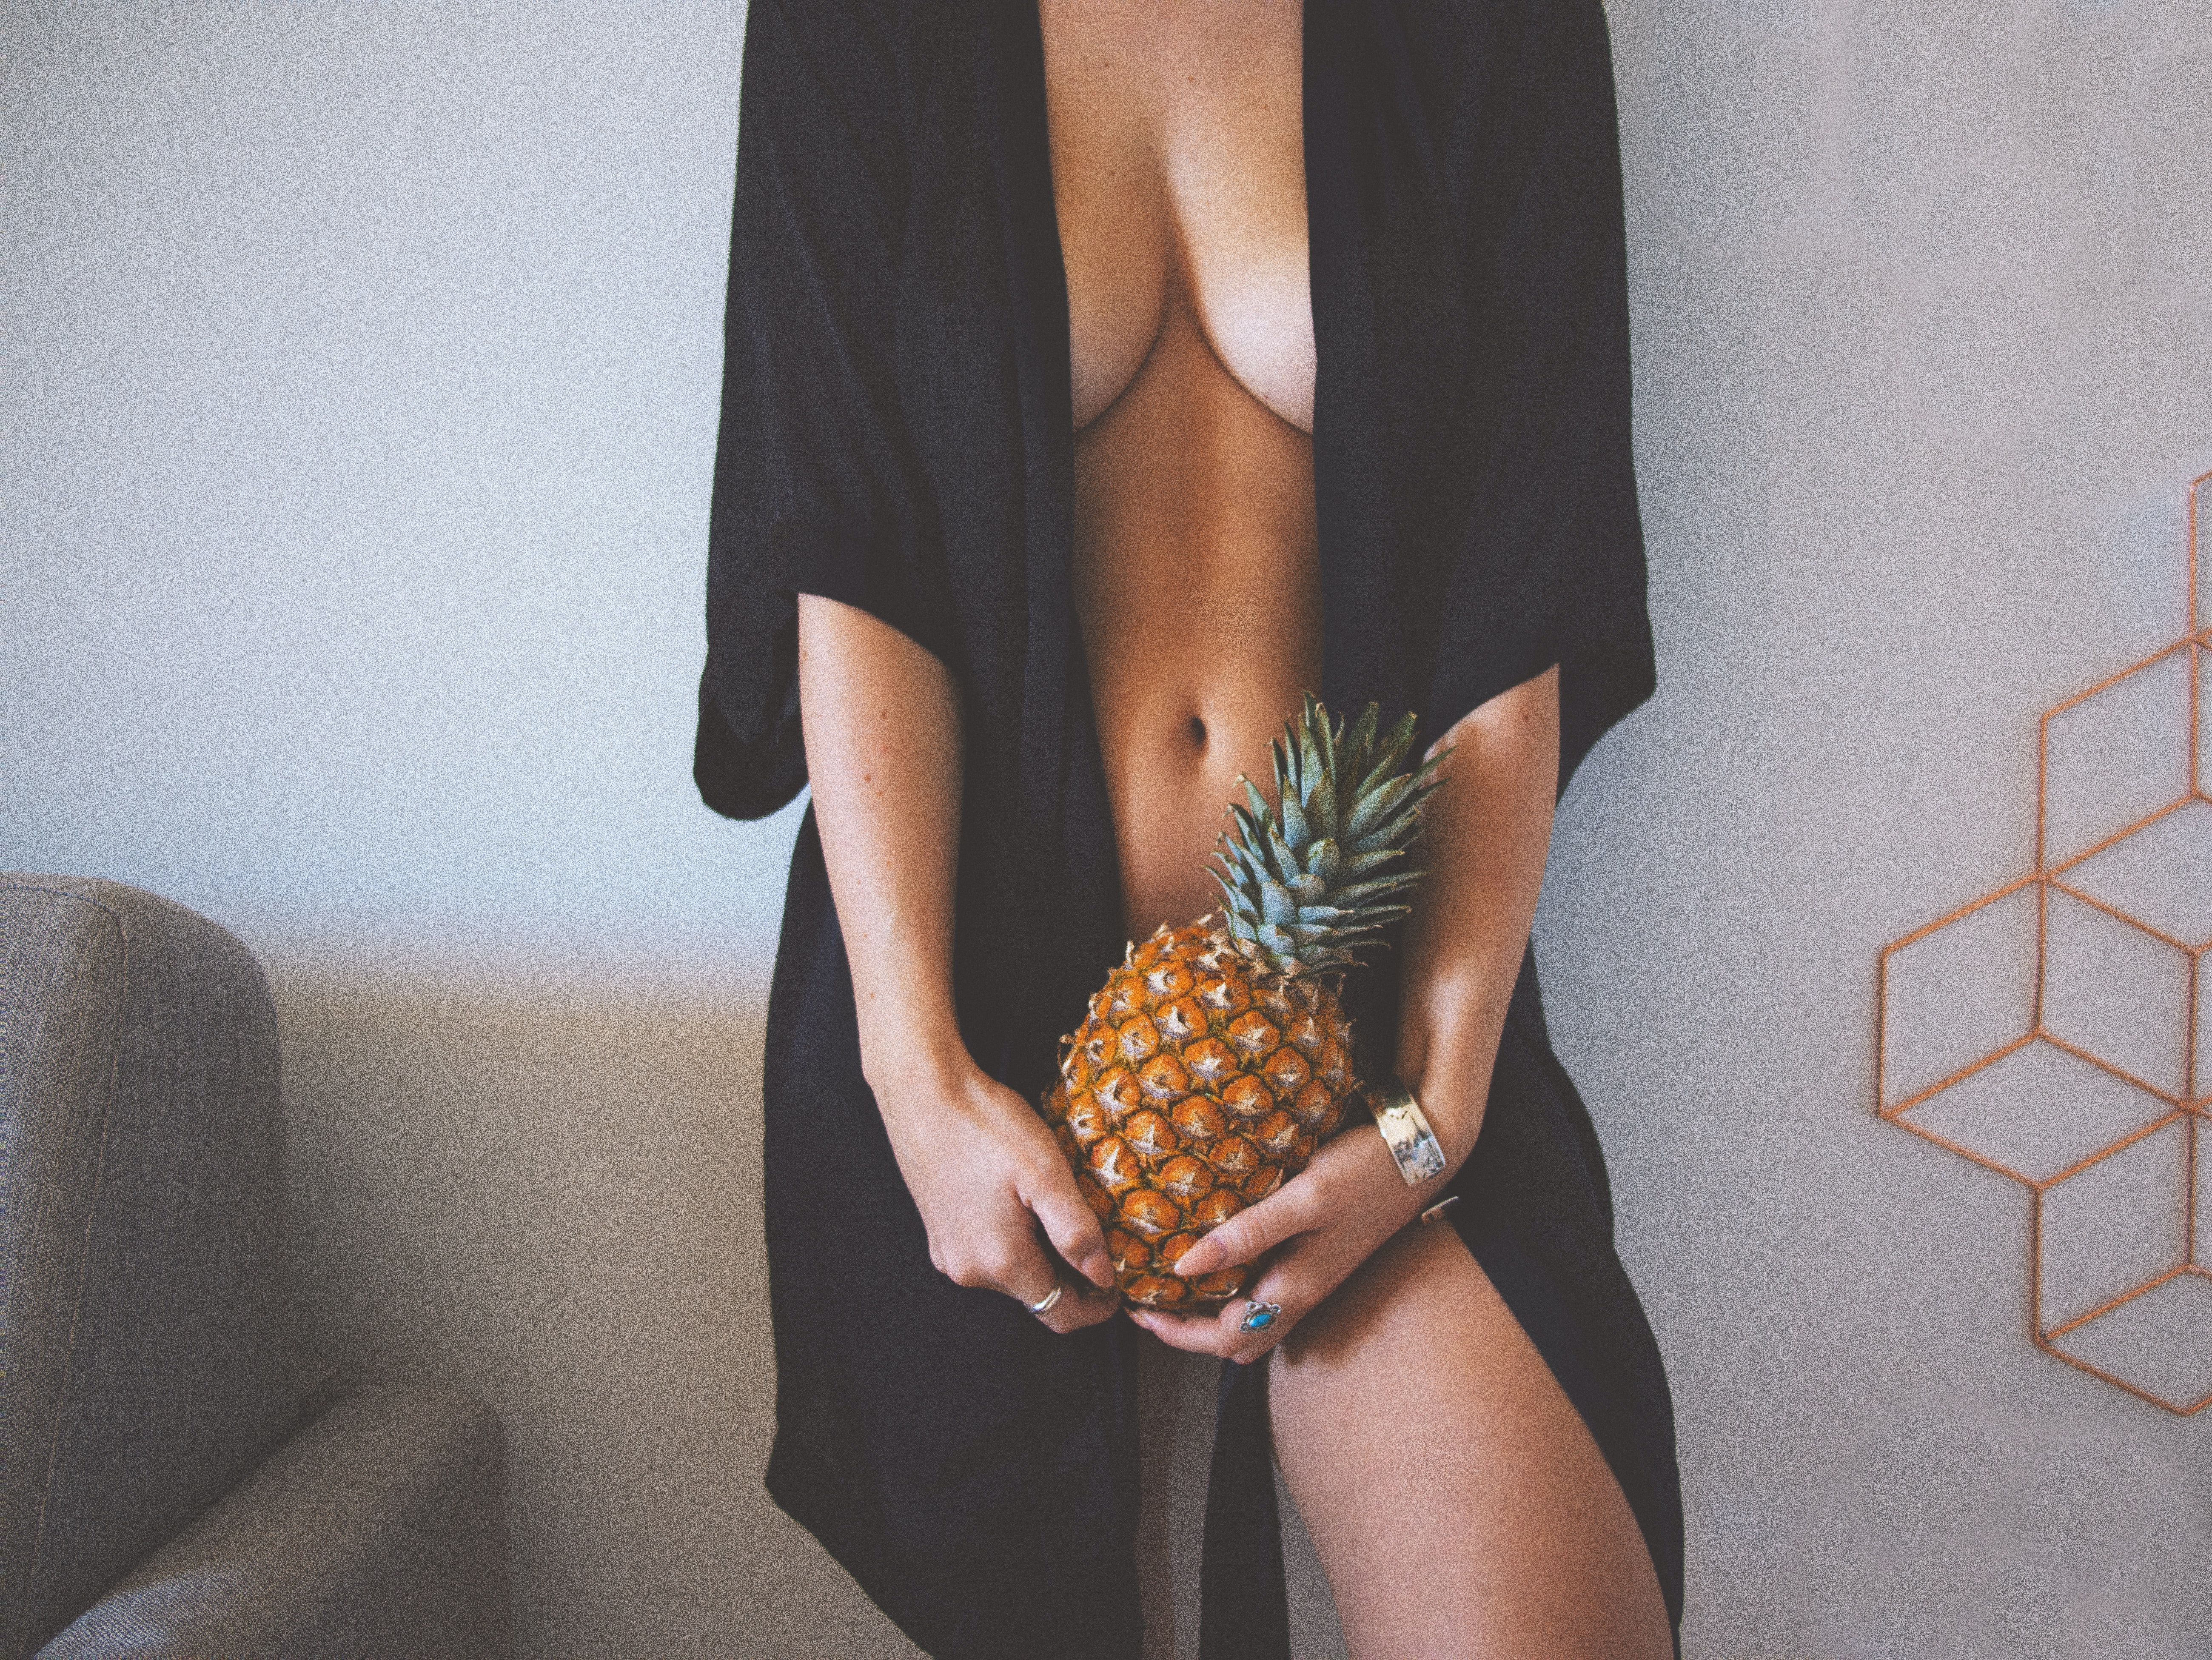 Naked woman in a robe holding a pineapple